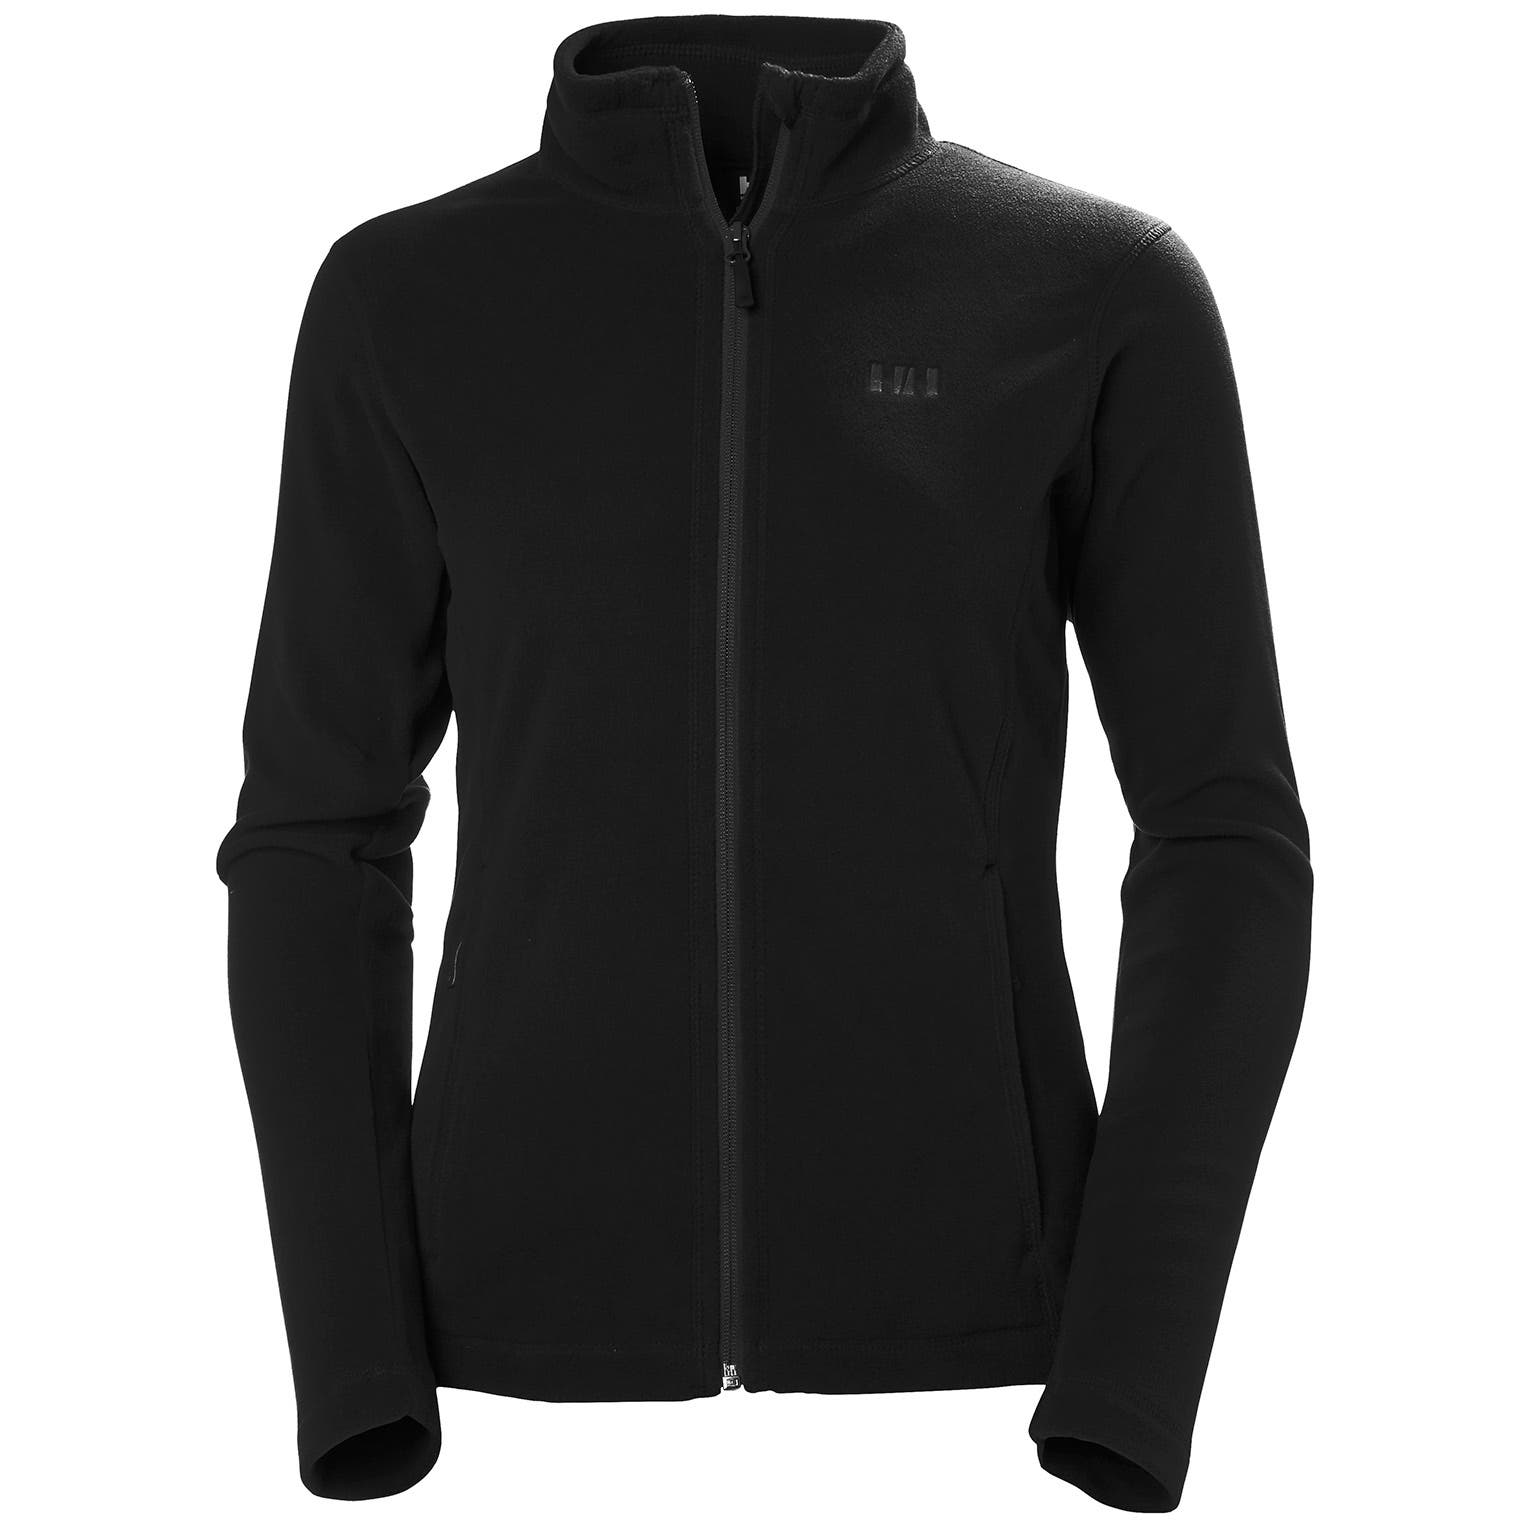 цены на Толстовка Helly Hansen W Daybreaker Fleece Jacket  в интернет-магазинах